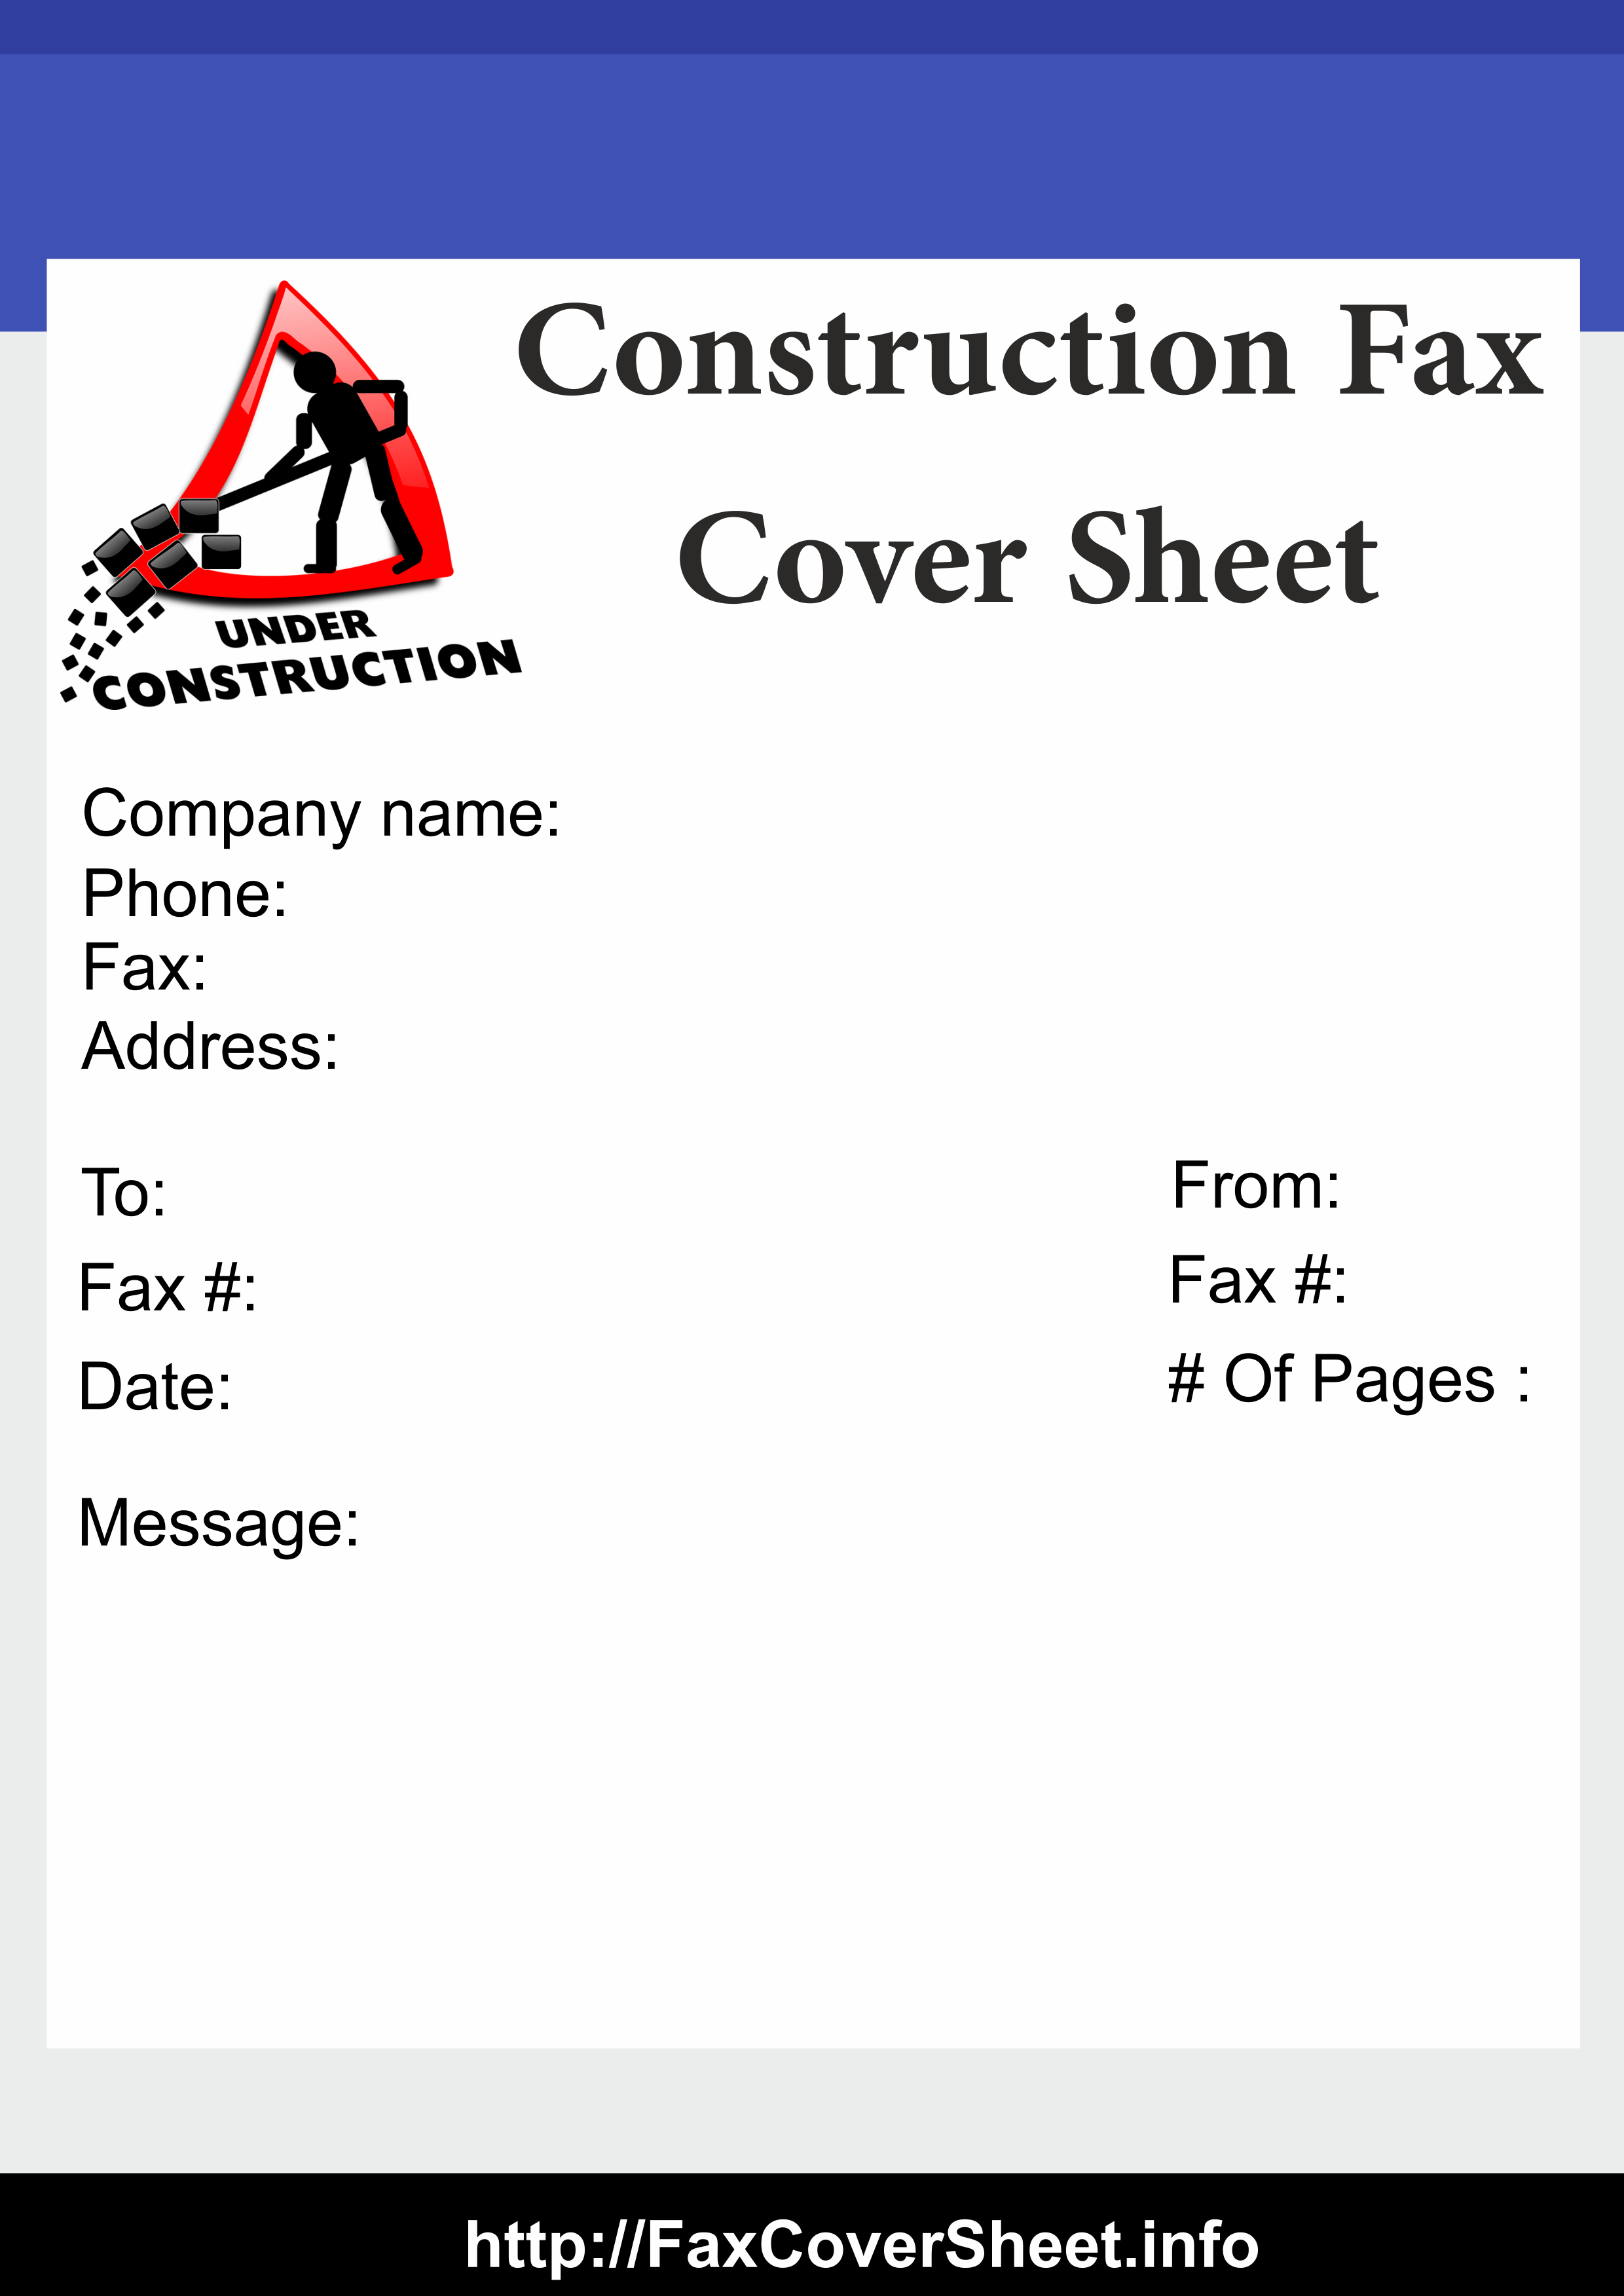 Free Construction Fax Cover Sheet Template